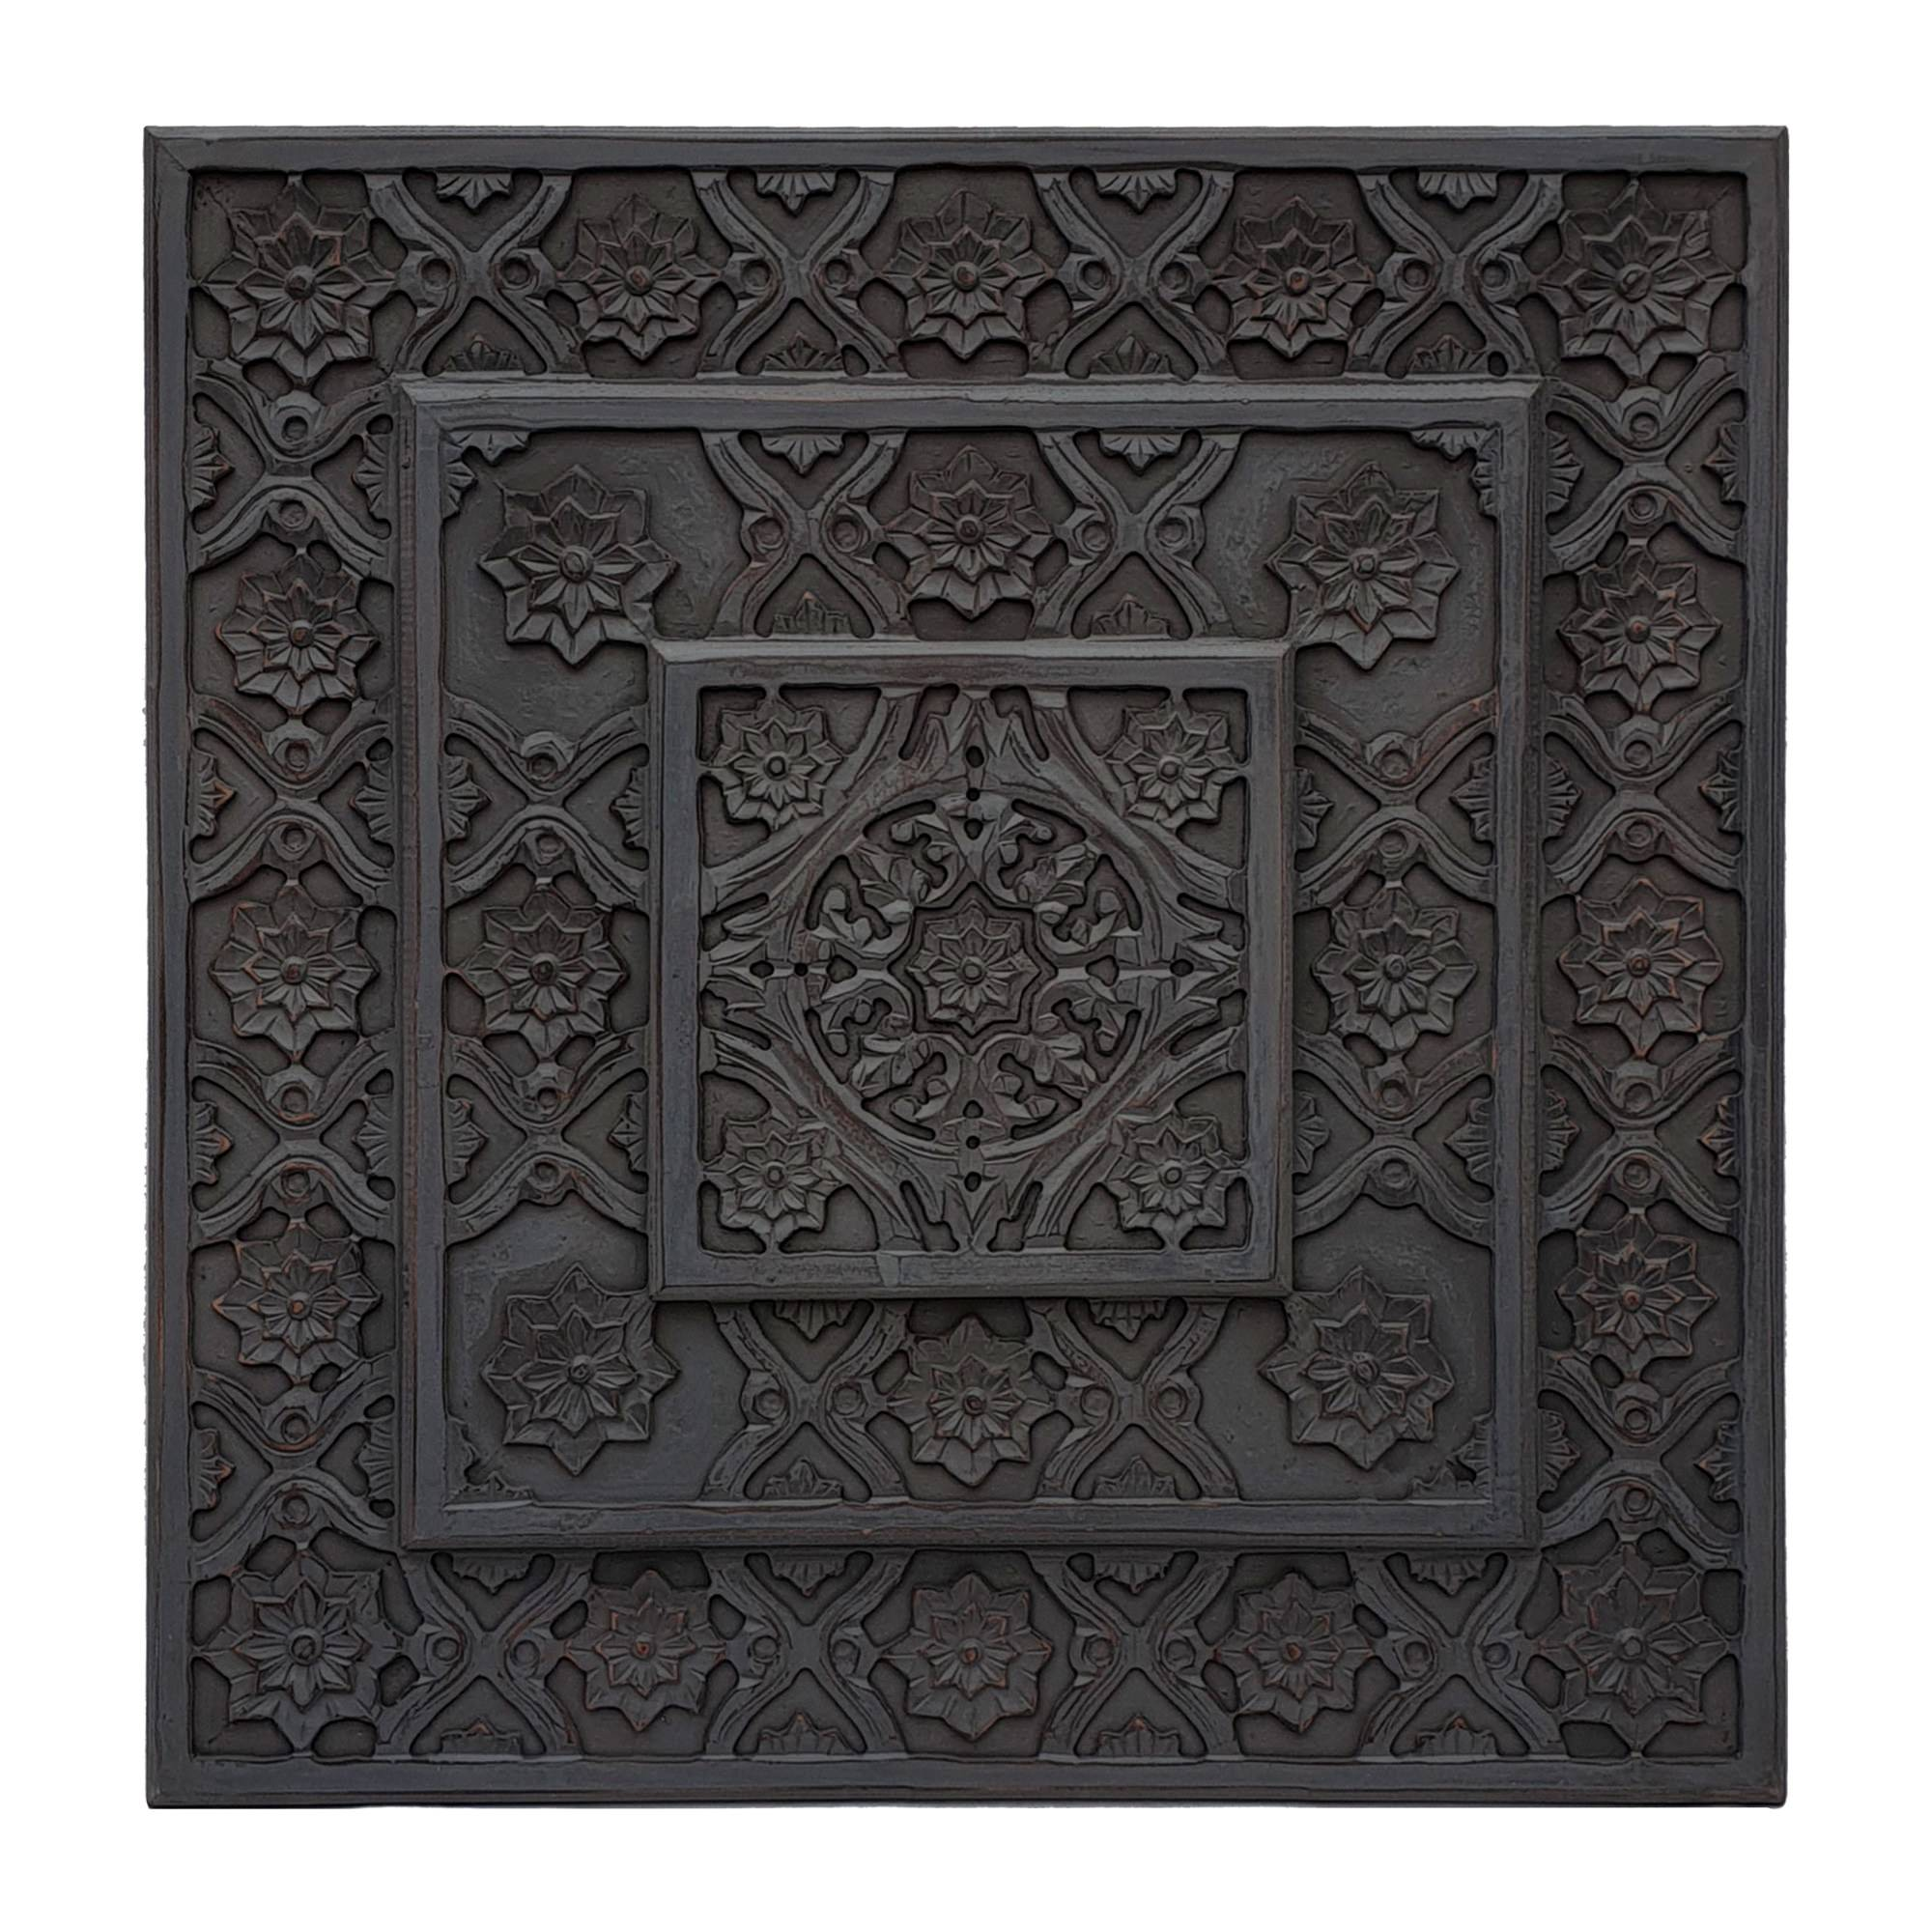 Indore Wooden Wall Art, 90cm, Charcoal